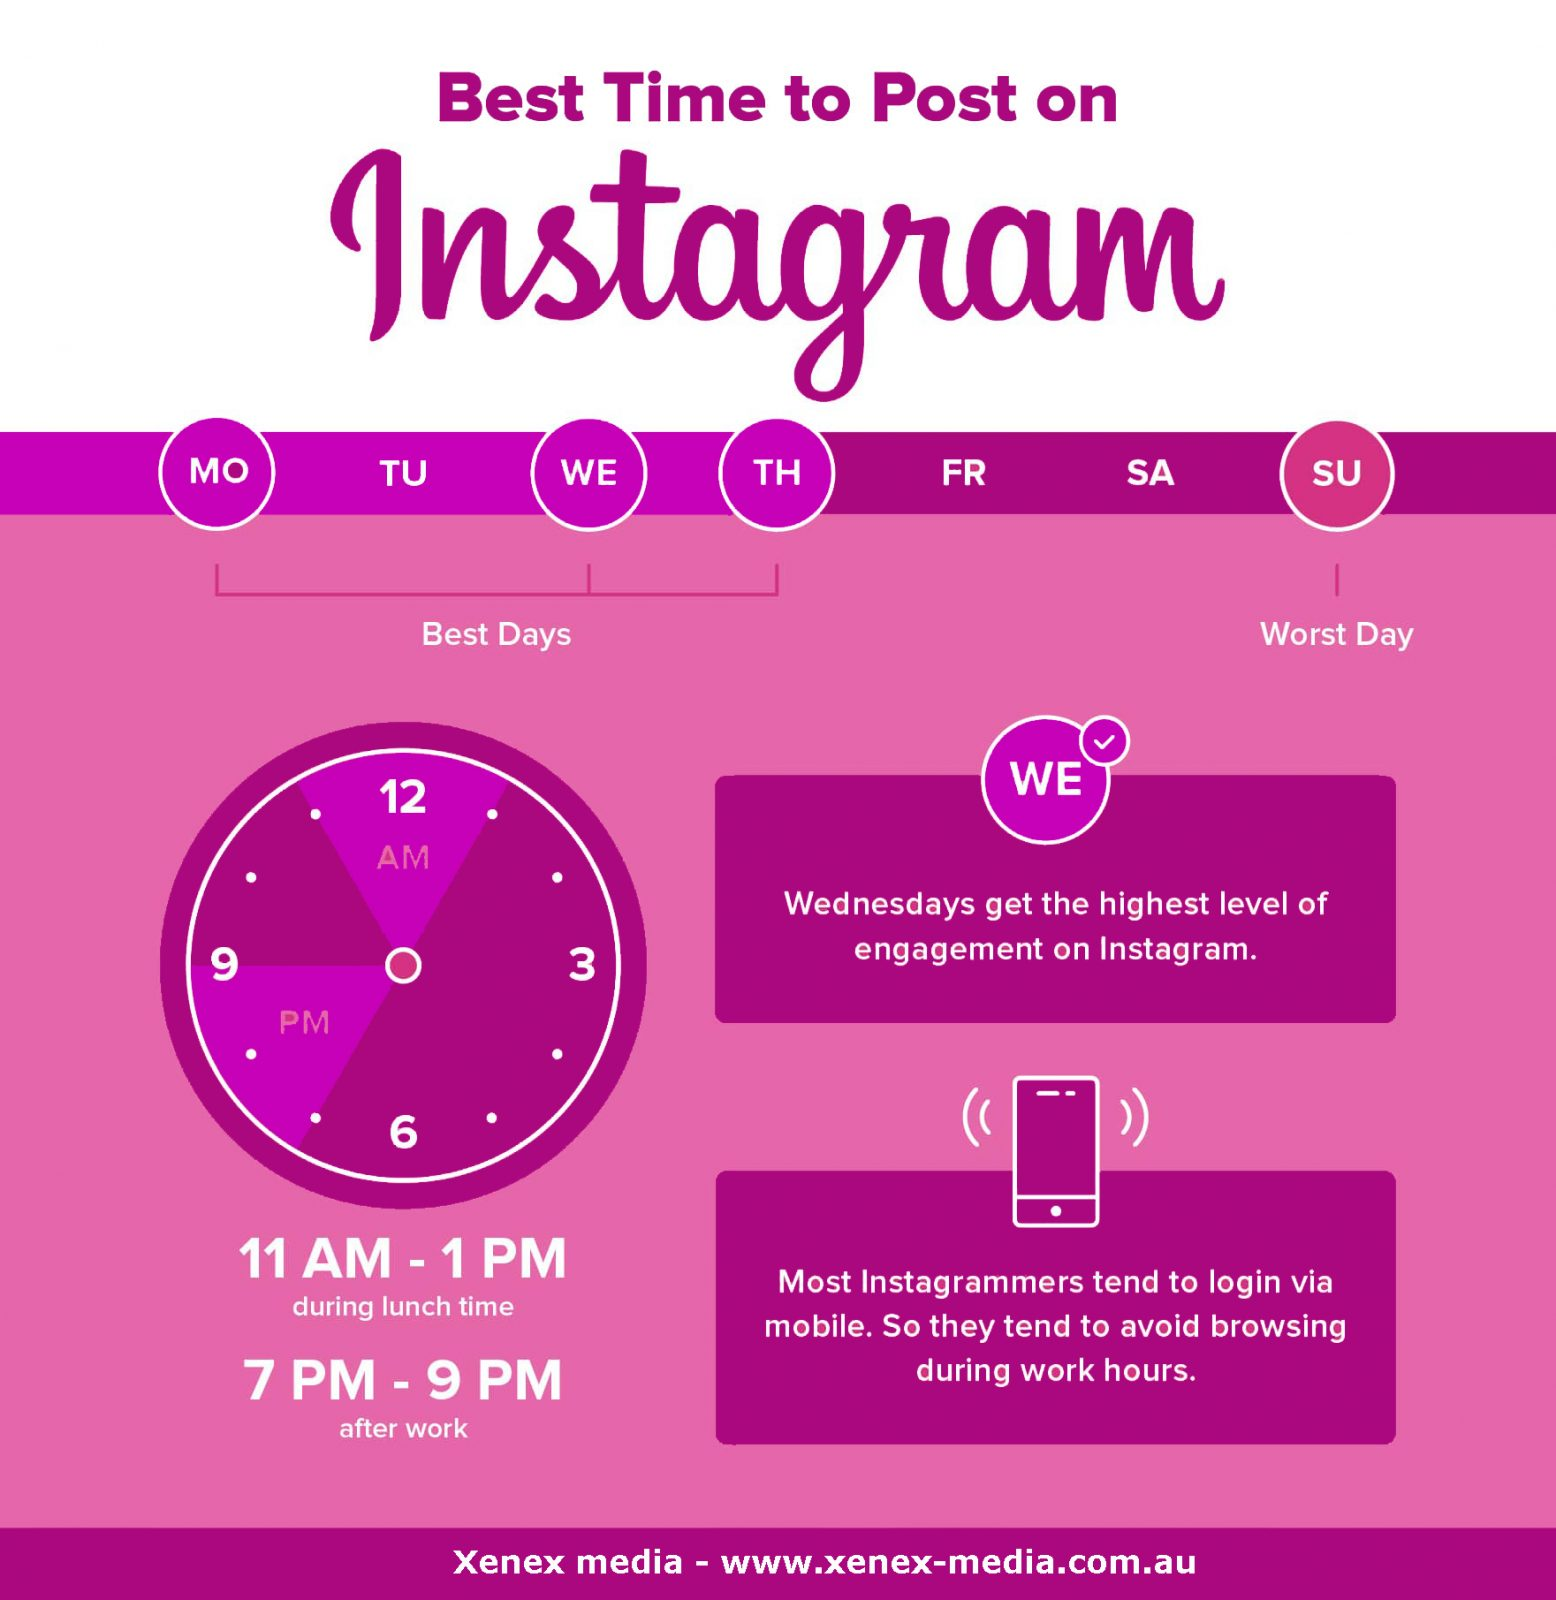 Best time to post on Instagram in 2019, best time to post on instagram, best time to post on instagram 2019